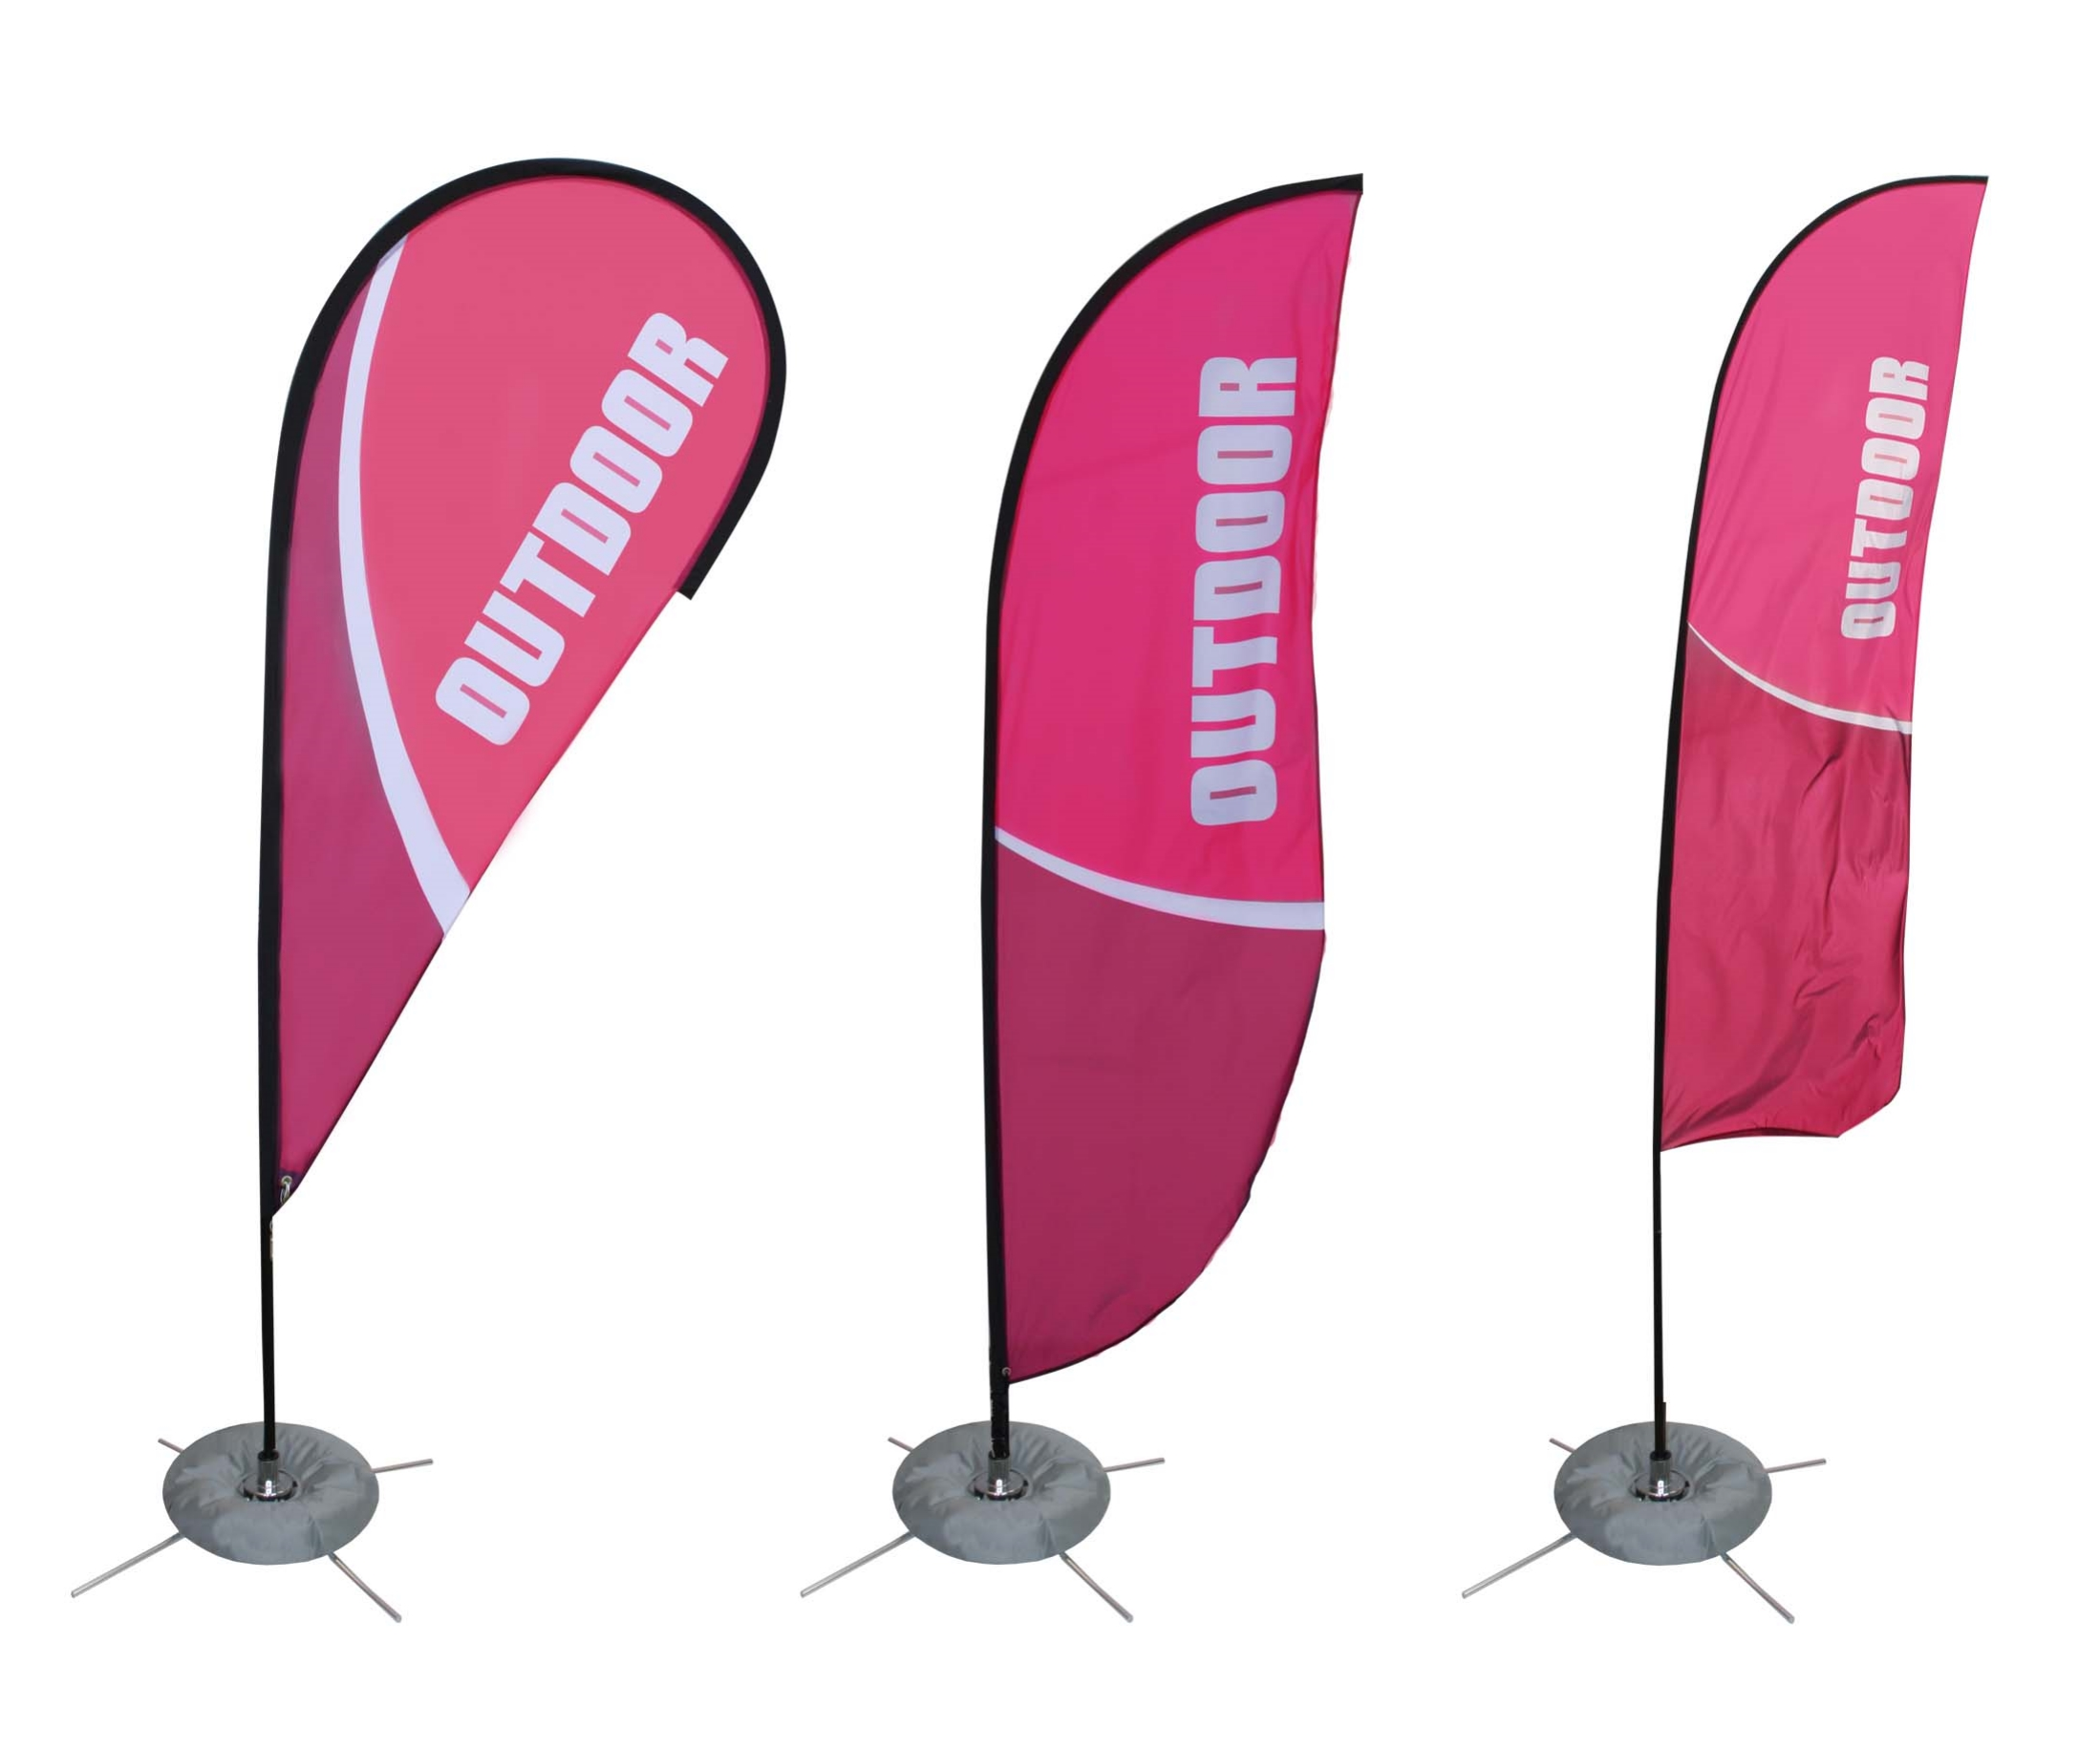 Feather banners by Accent Banner